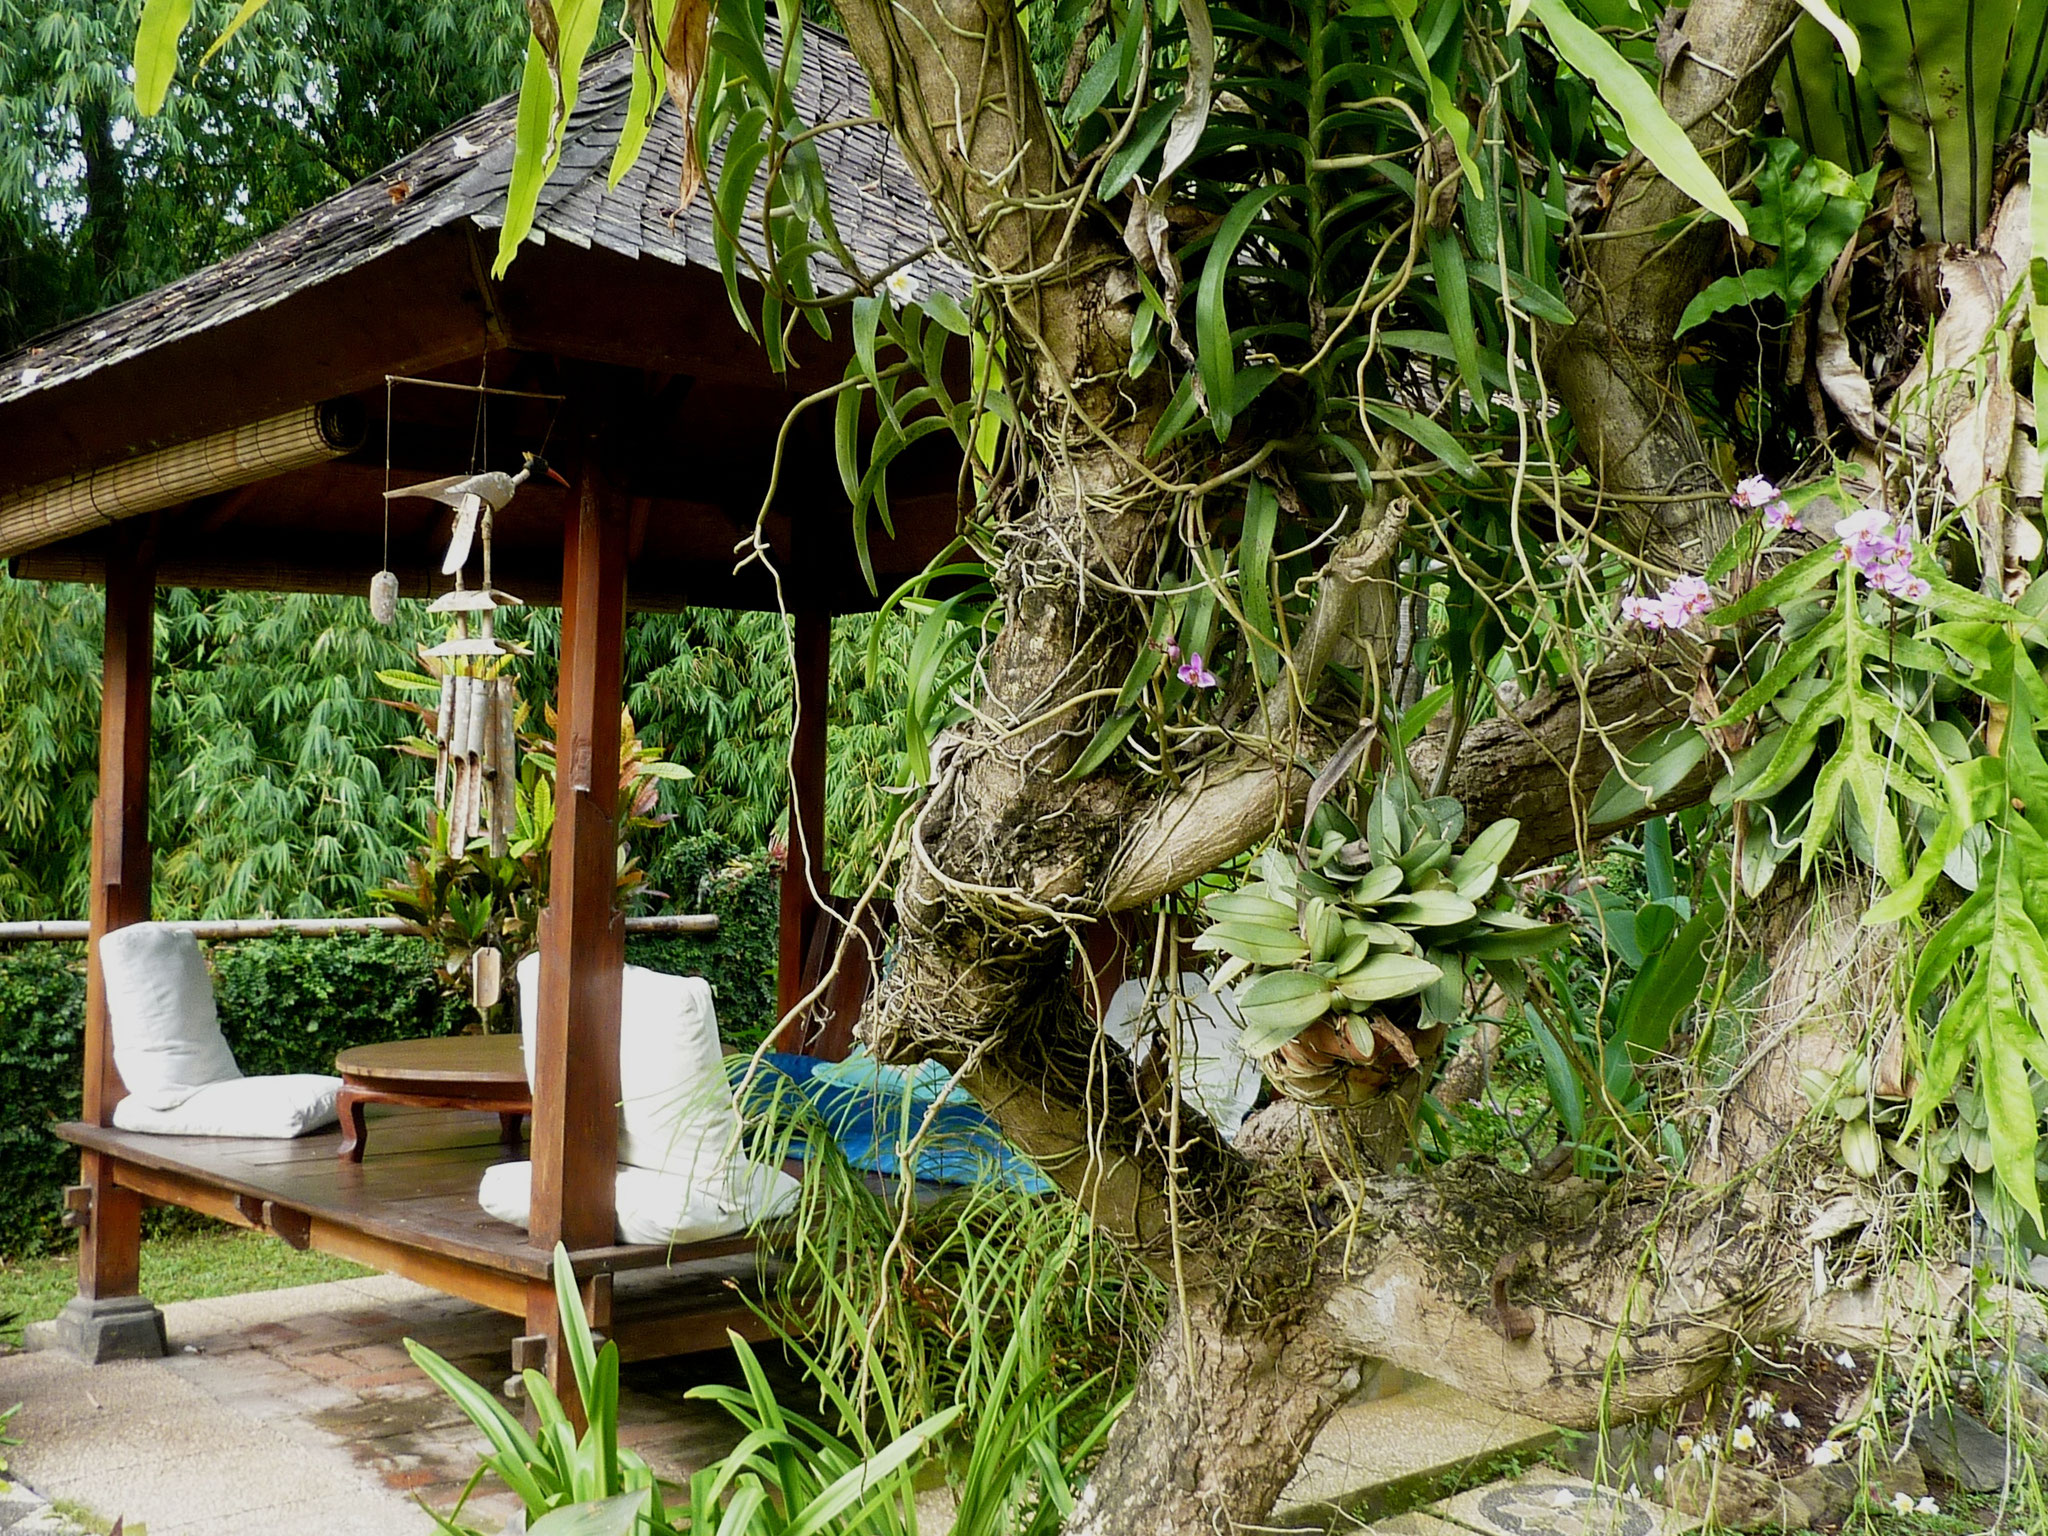 Orchids and other epiphytes on frangipani tree